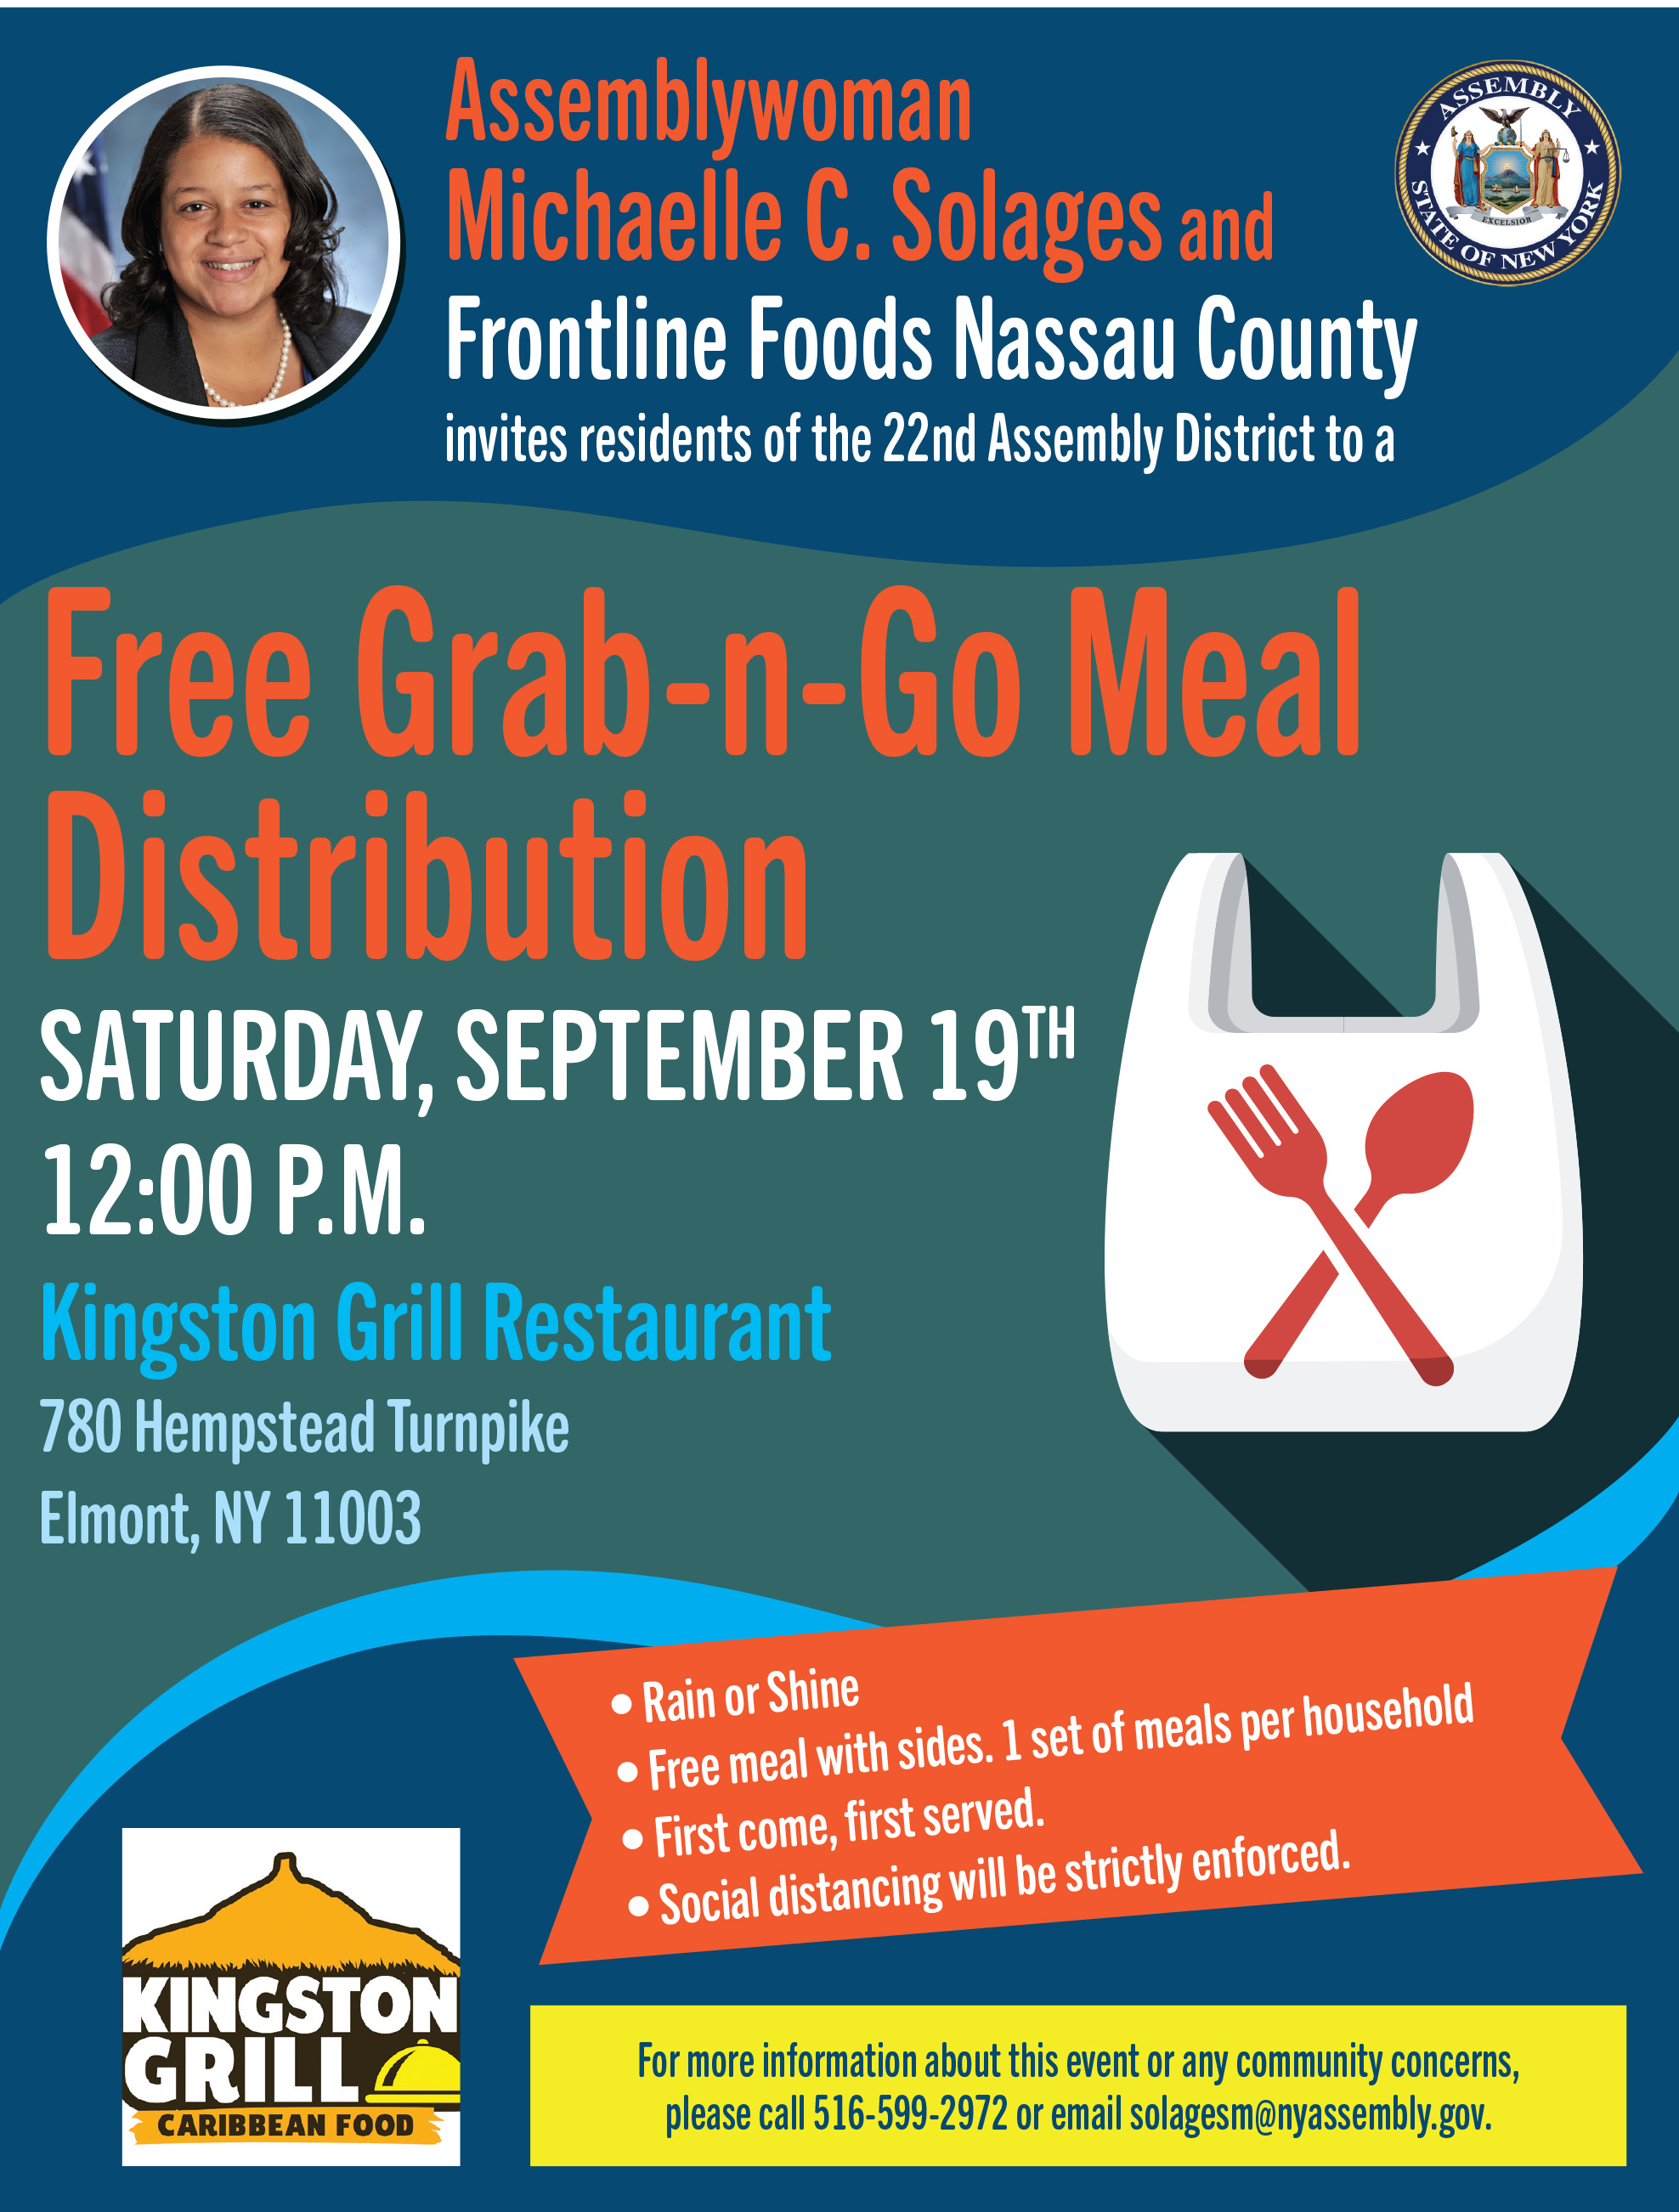 Grab-n-Go Meal Distribution